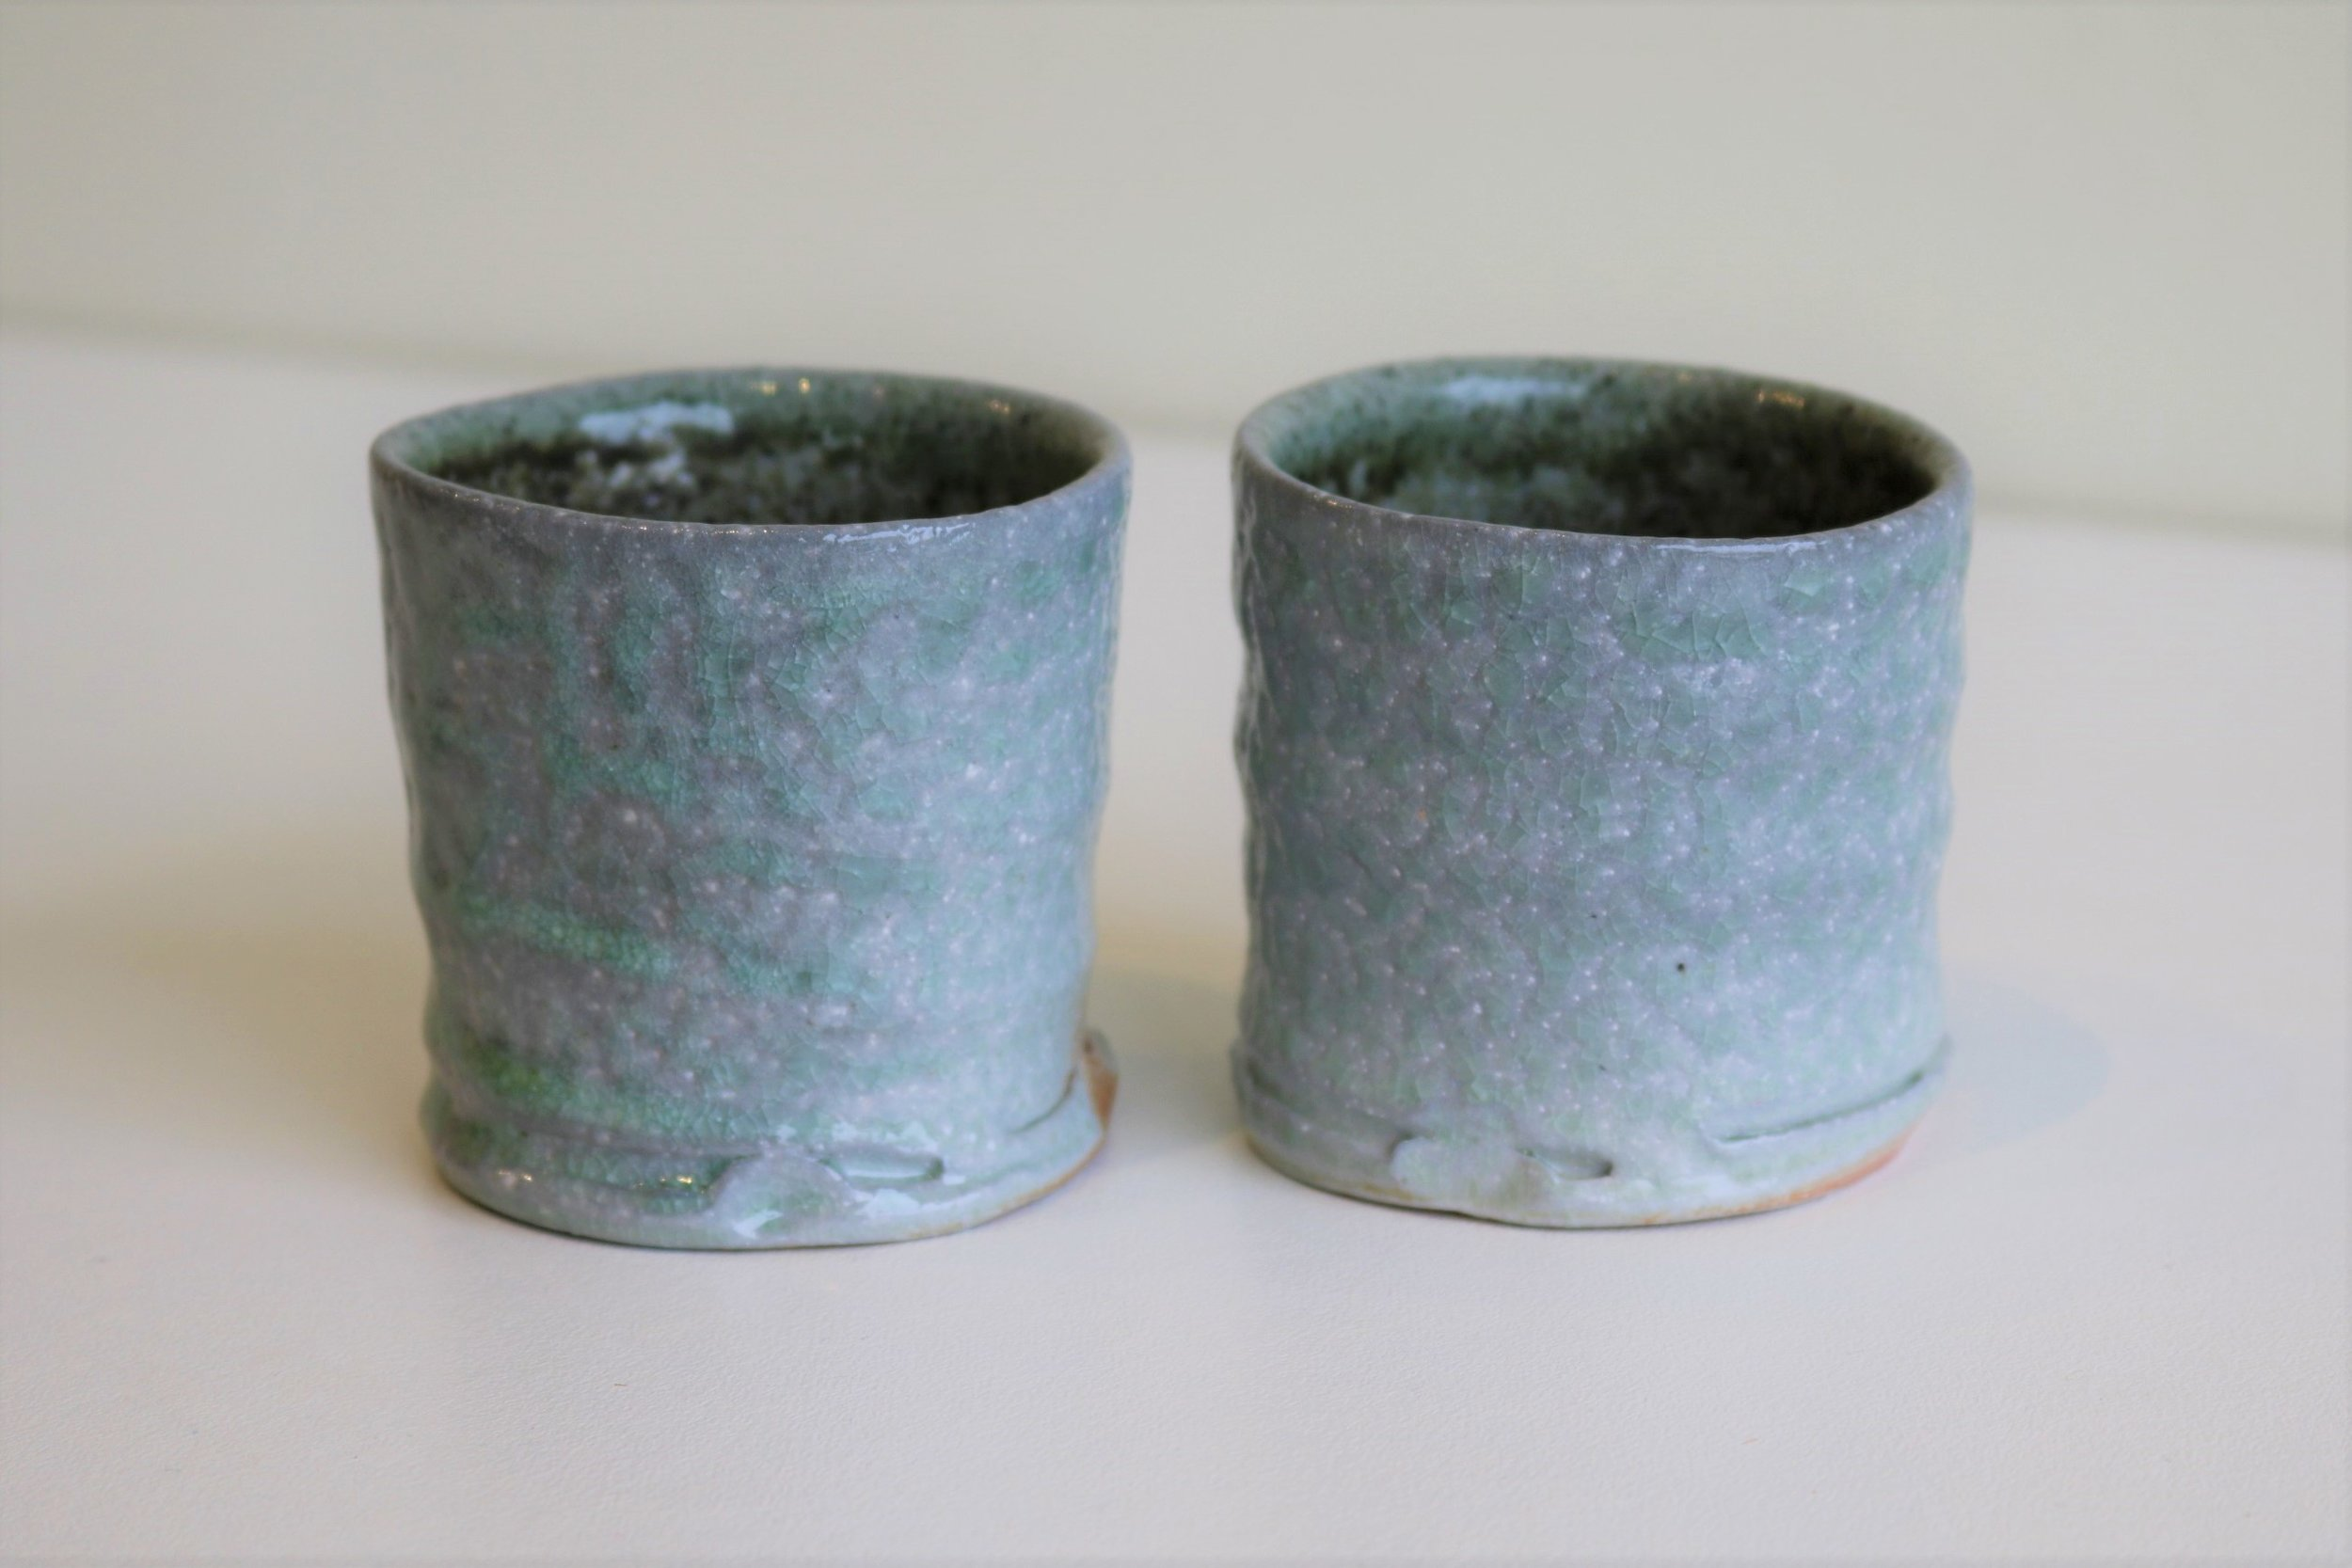 Yuri Wiedenhofer, 48.  Beakers,  2018, recycled porcelain, Tanja syenite interior glaze, carbon trapping, 5.5 day wood firing, Yellow Stringy to start, Black Wattle and Hickory, Melaleuca to finish, Pittosporum undulata (green) final stoke